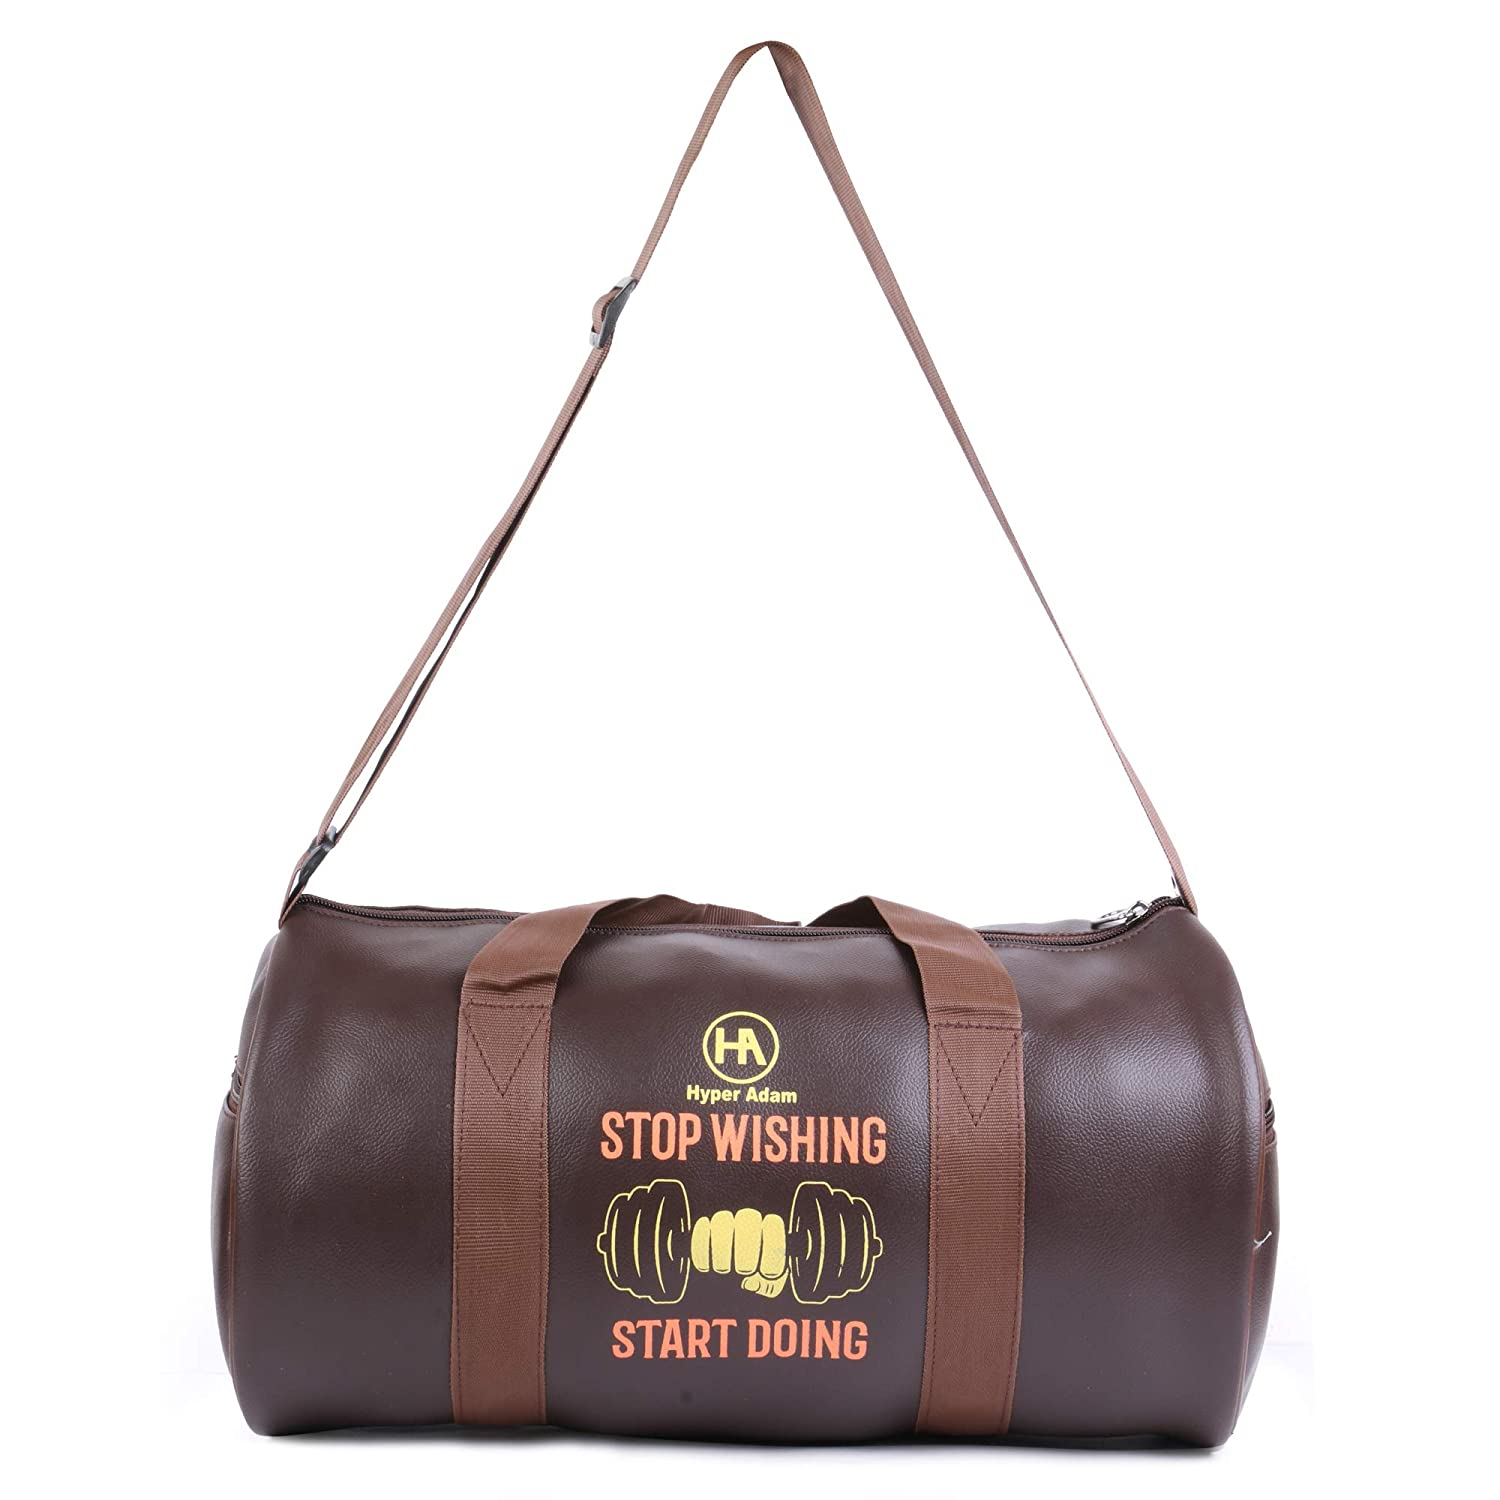 a64f39c410dd Hyper Adam Unique Travel Duffel Leather Gym Bag with 2 Side Pocket (16  Inch